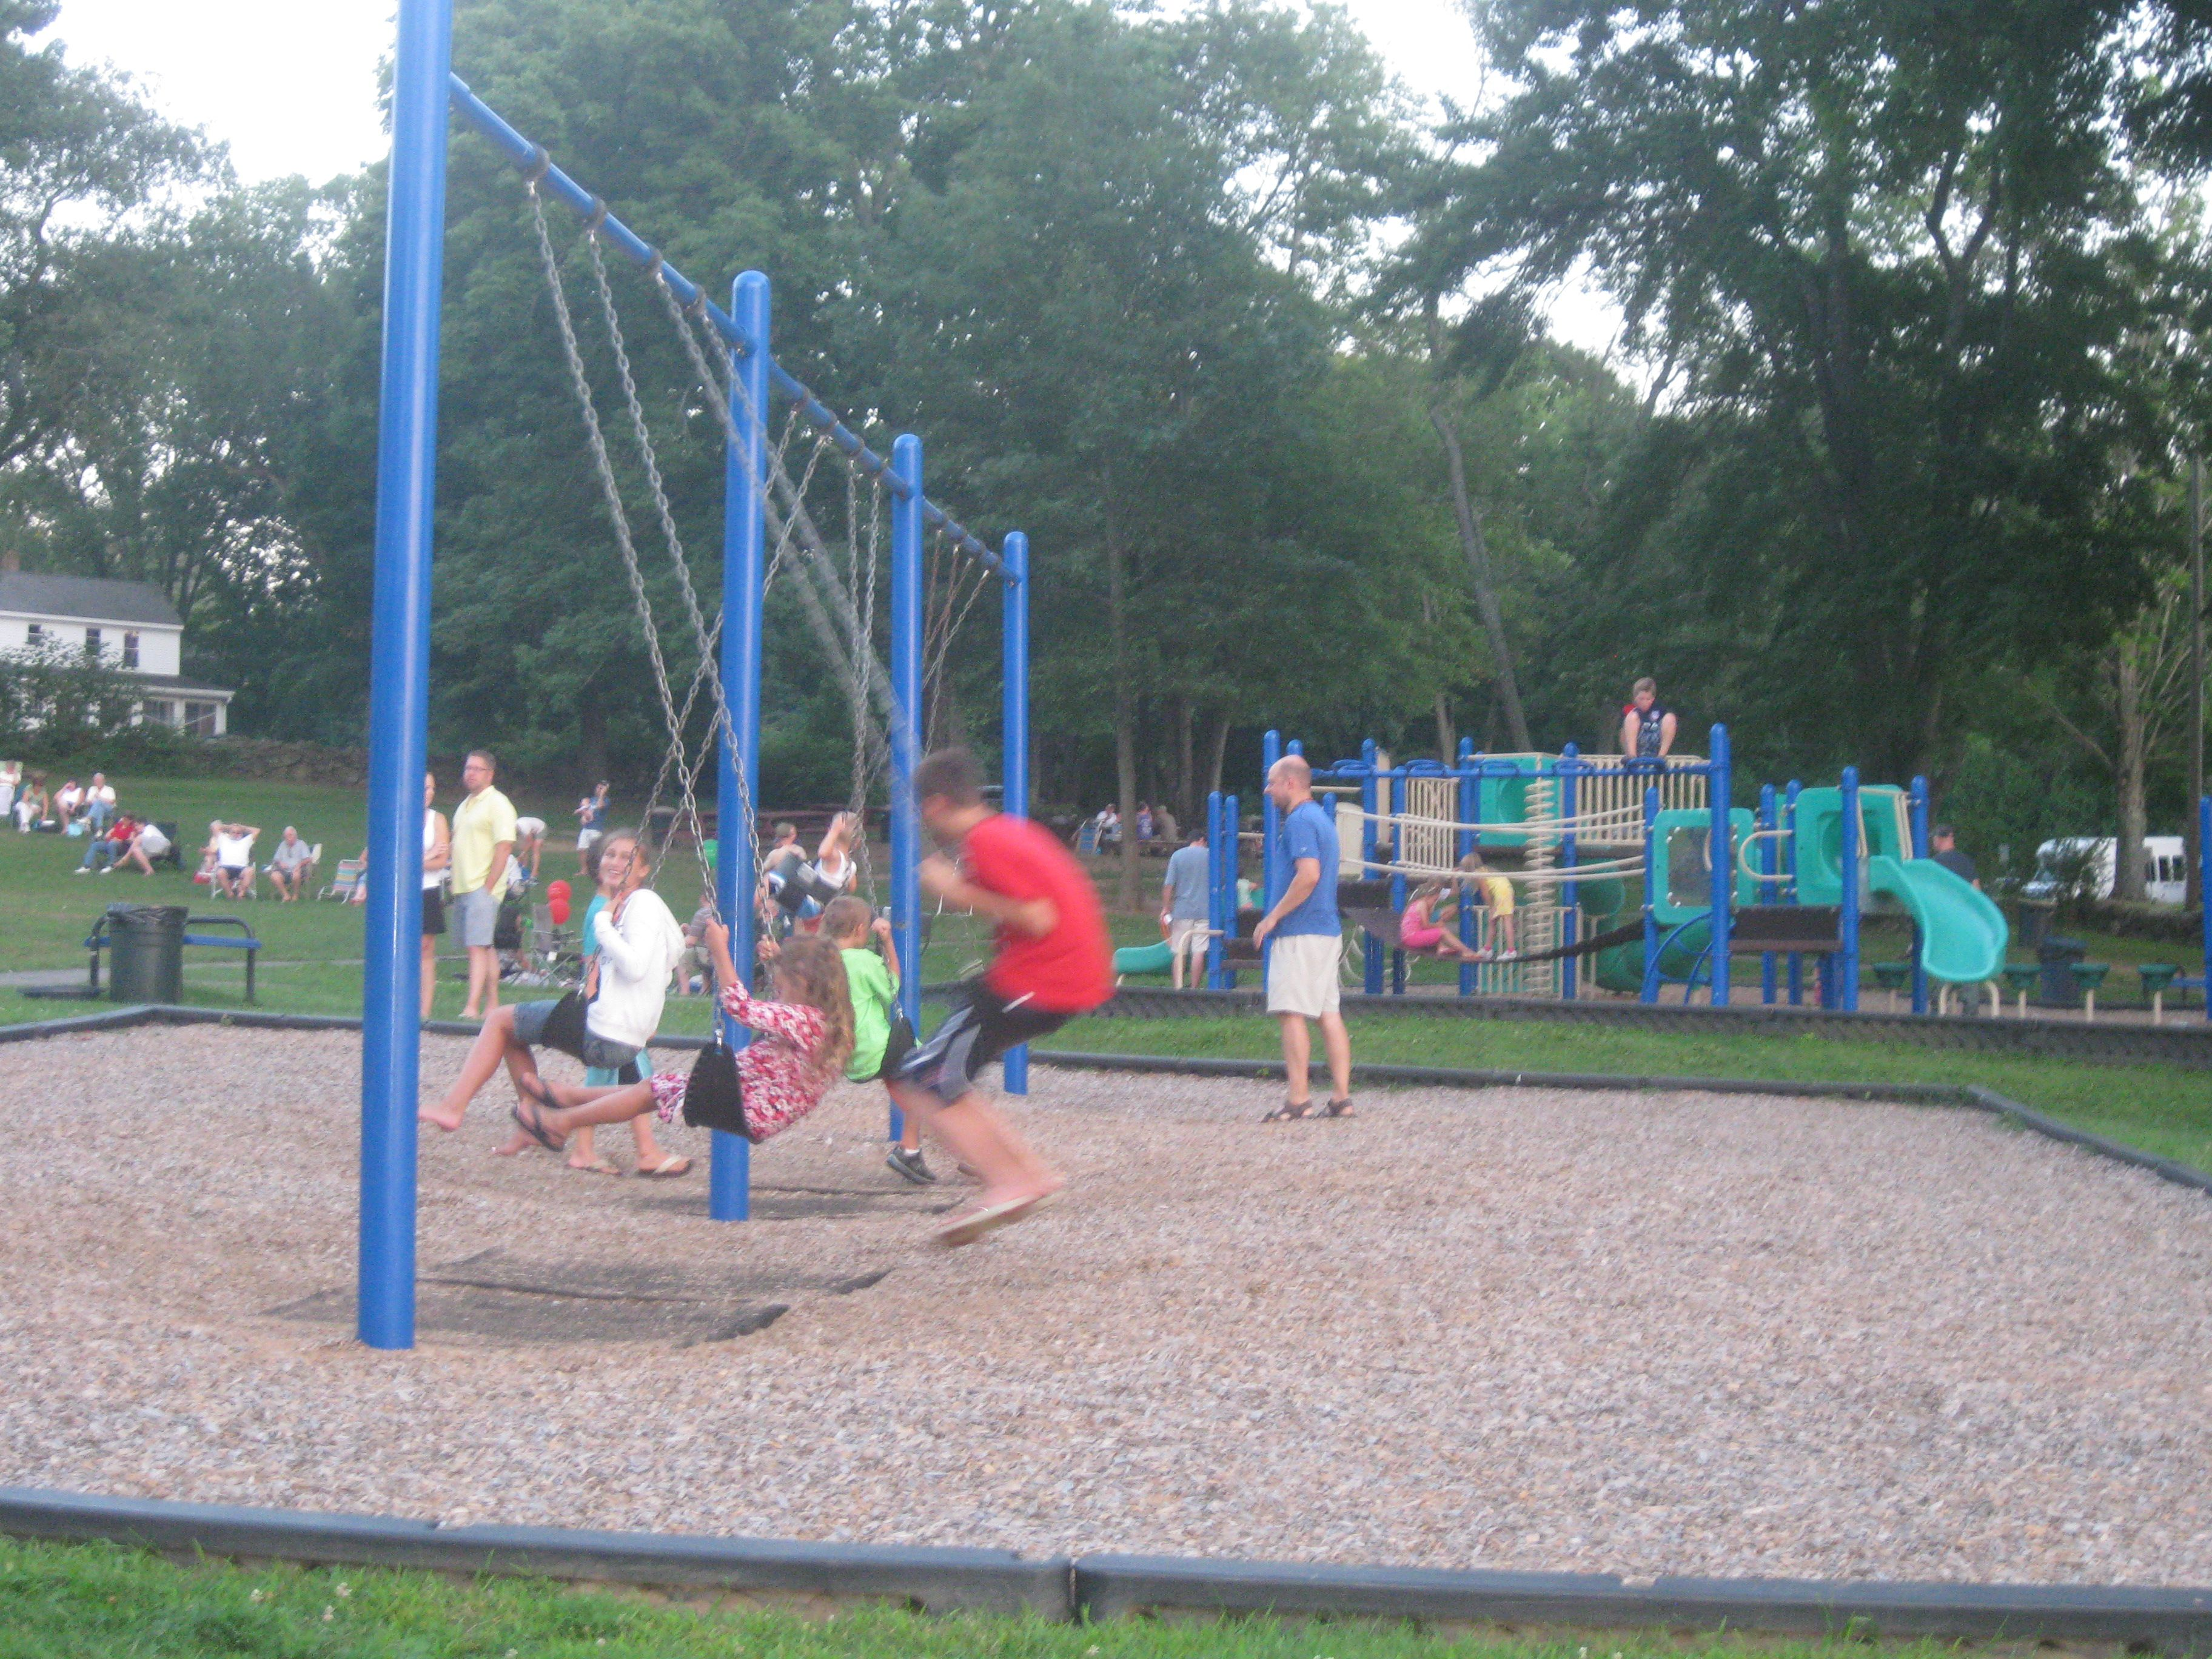 Enjoyable Times On The Swings Listening To Live Music At Patriots Park Park Live Music Park Slide